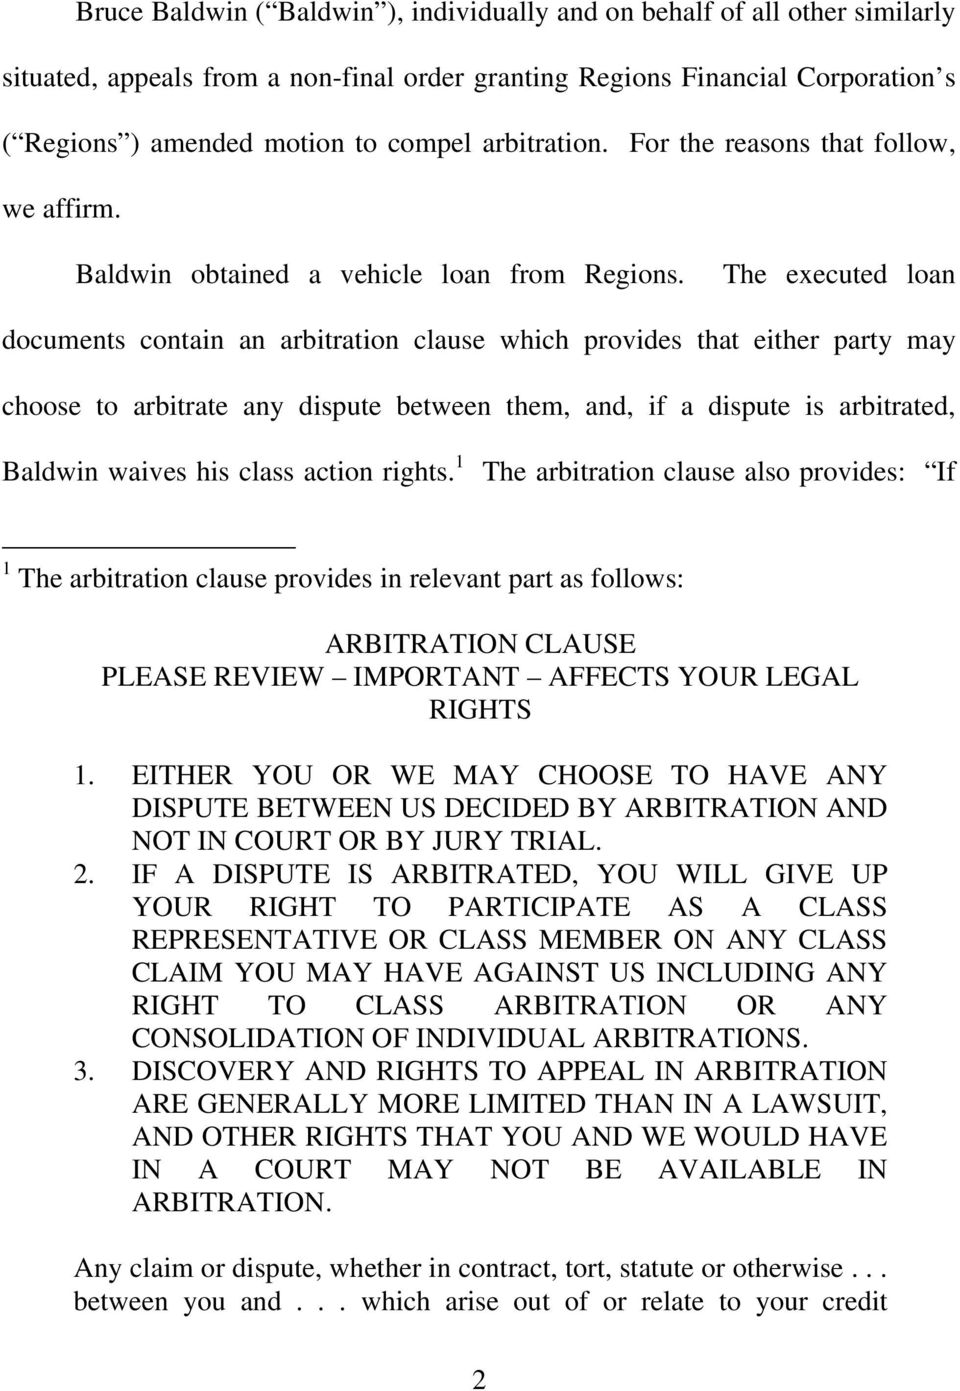 The executed loan documents contain an arbitration clause which provides that either party may choose to arbitrate any dispute between them, and, if a dispute is arbitrated, Baldwin waives his class